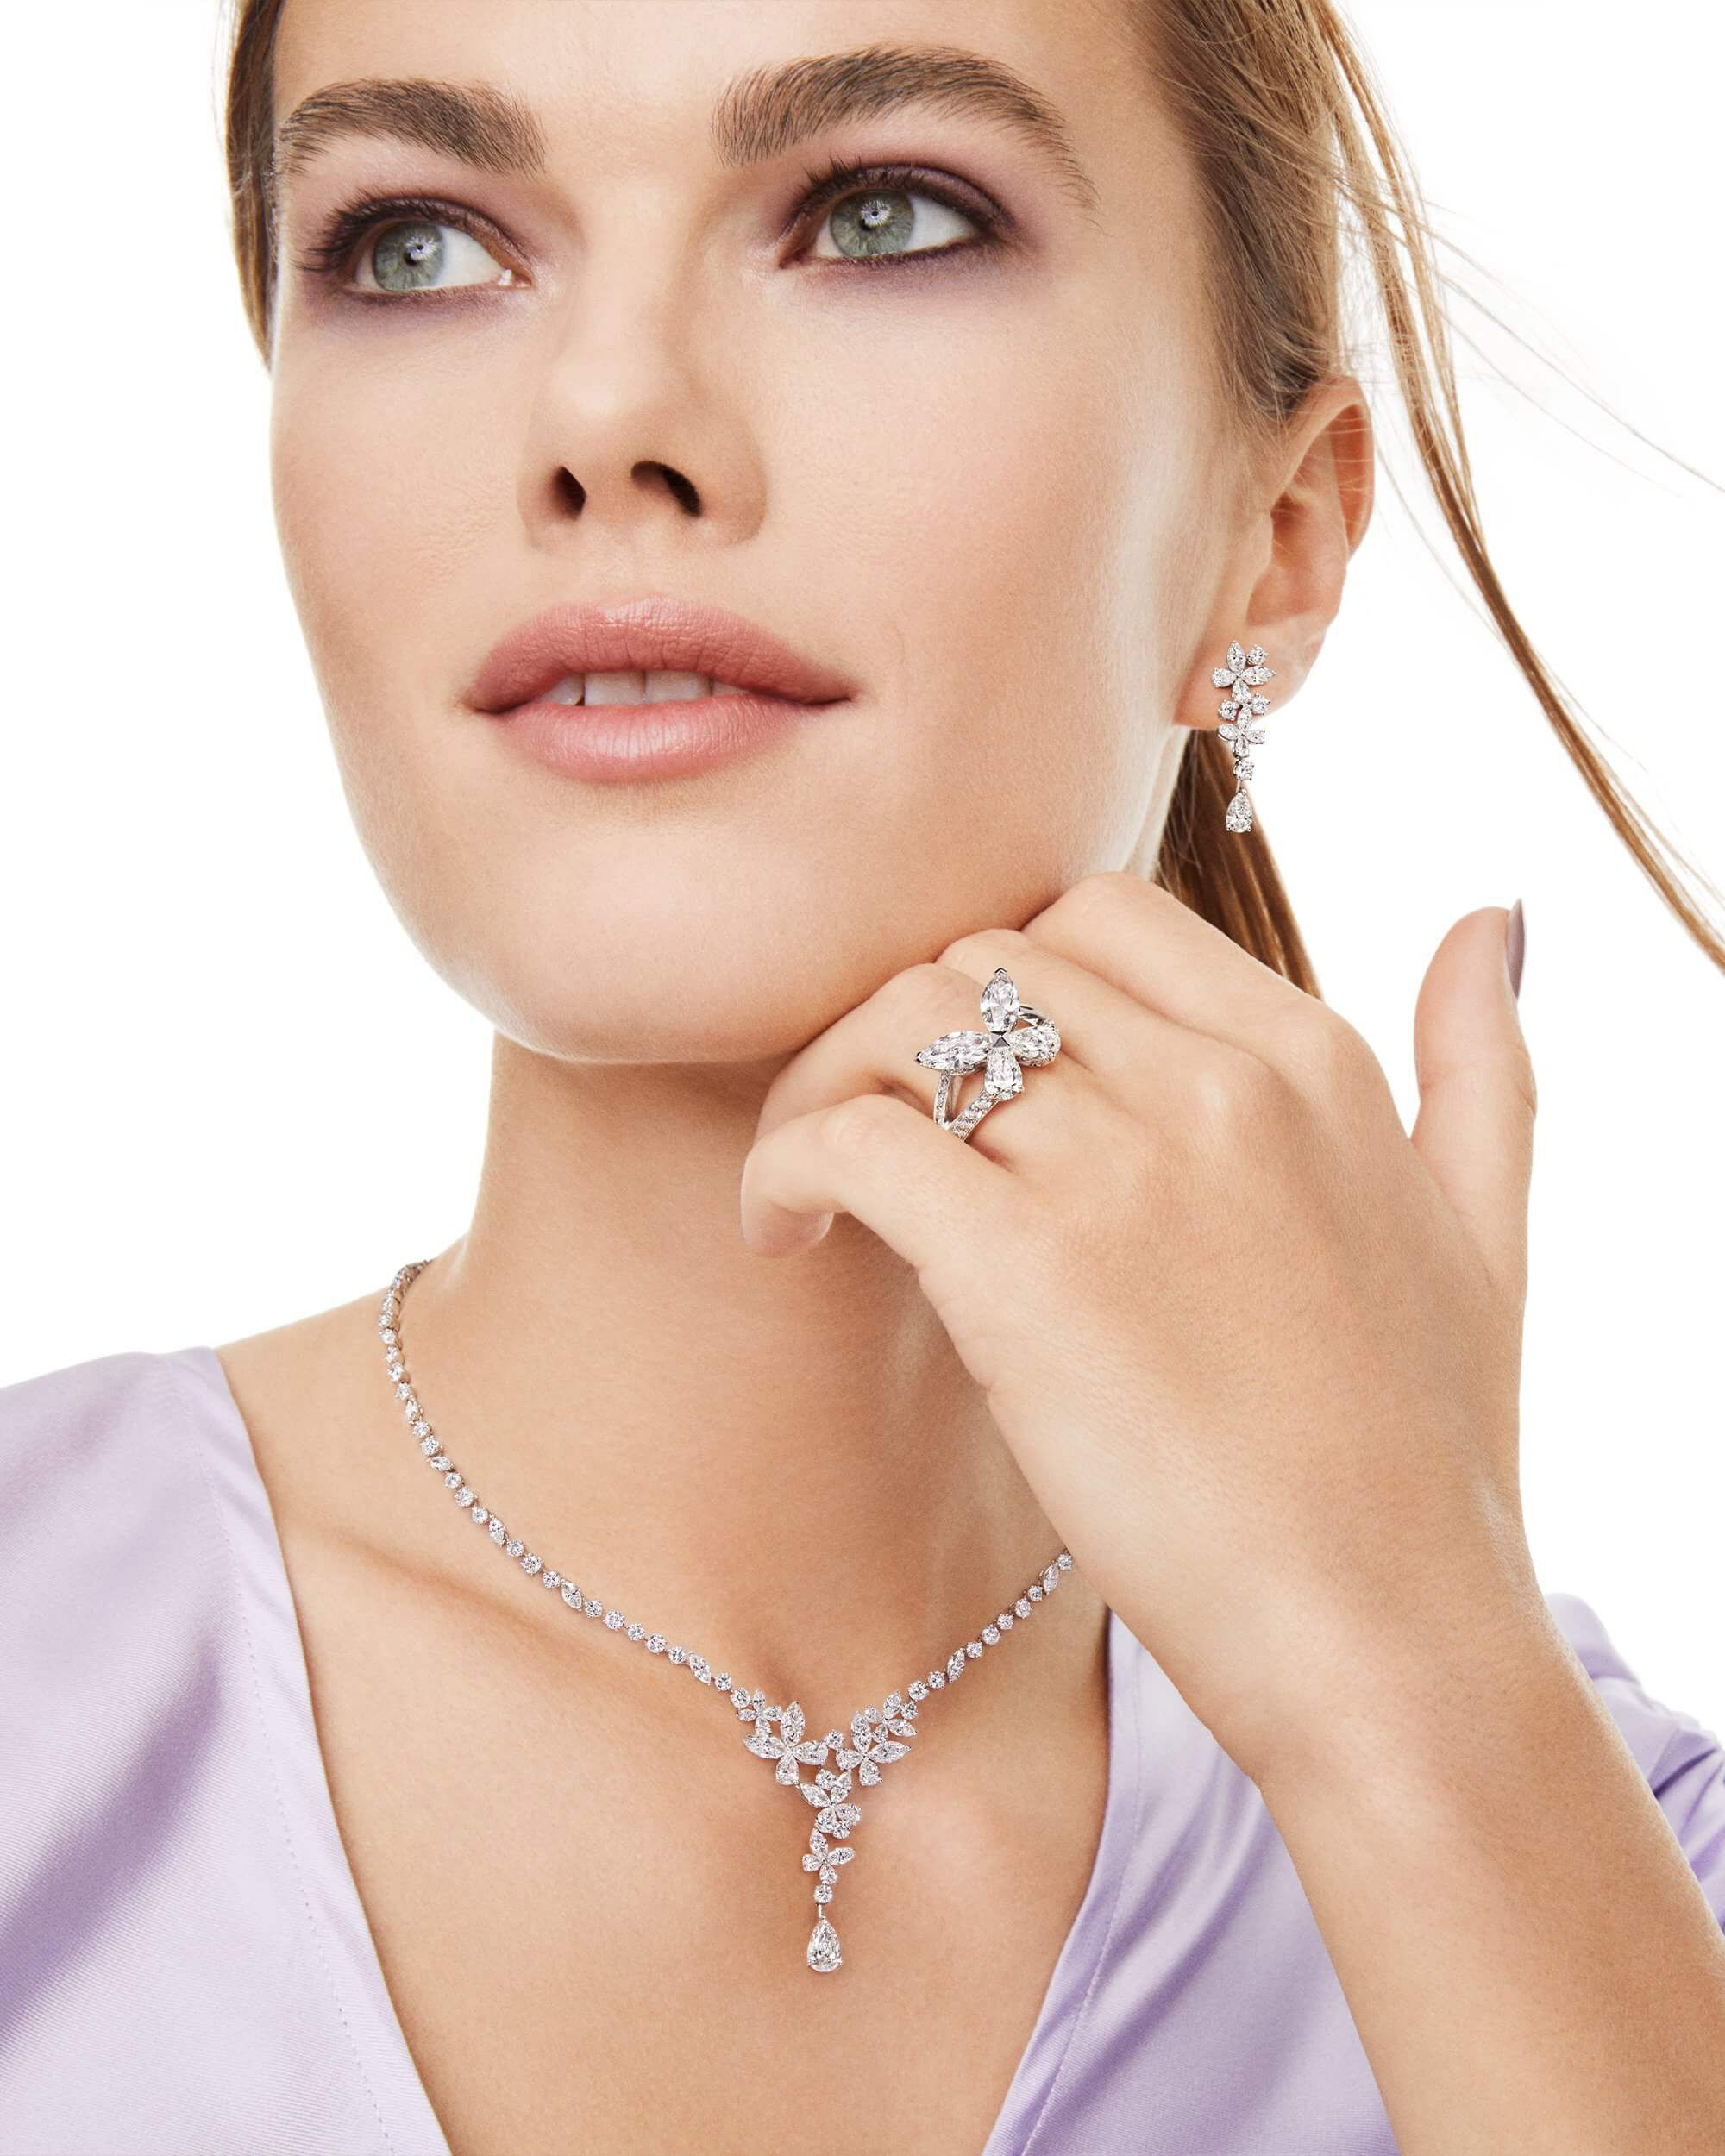 A model wearing the Graff Classic Butterfly Collection earrings, ring and necklace